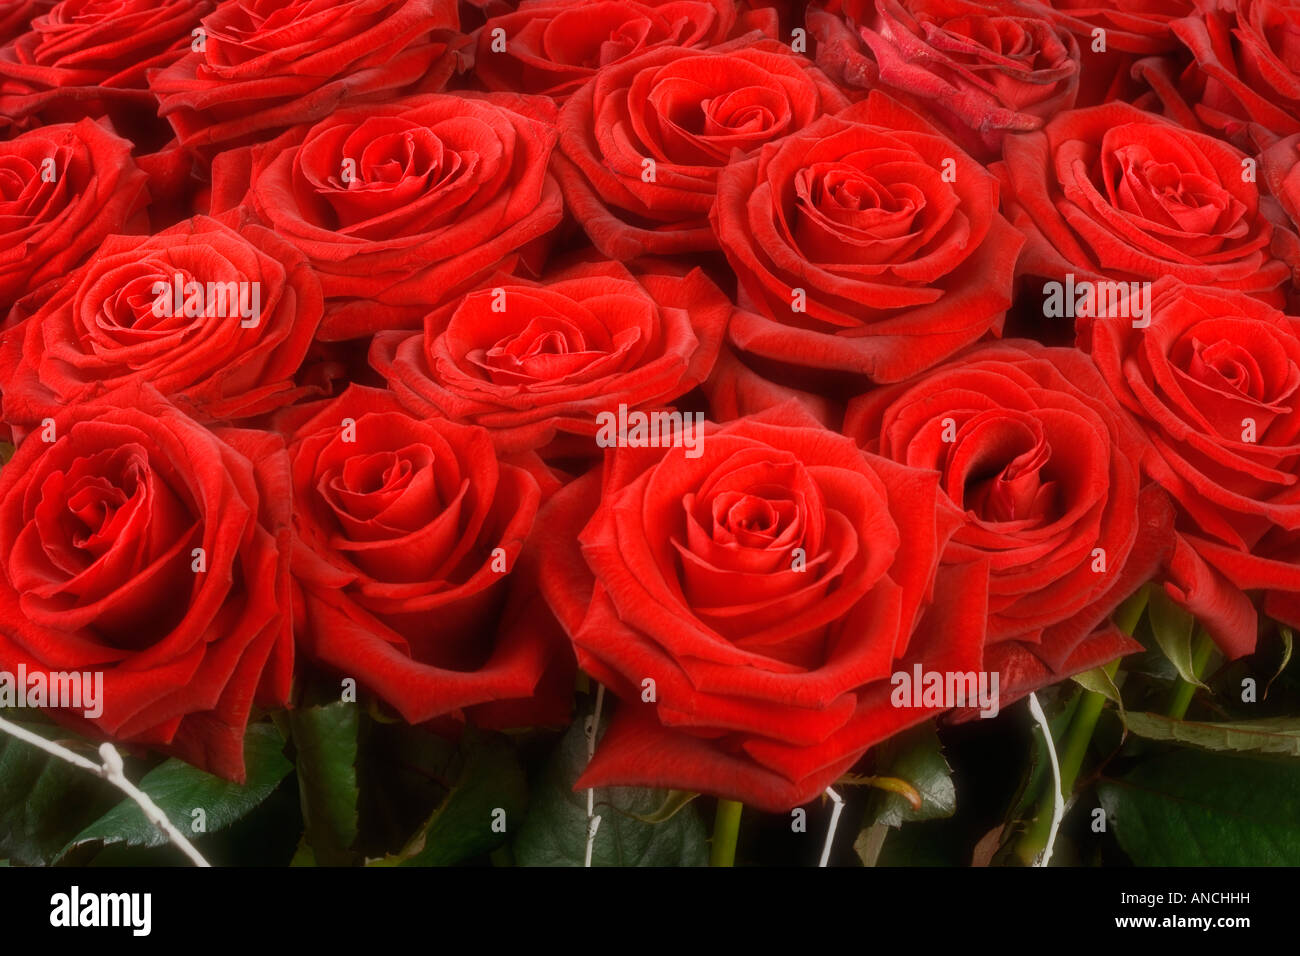 BOUQUET OF ROSES - Stock Image